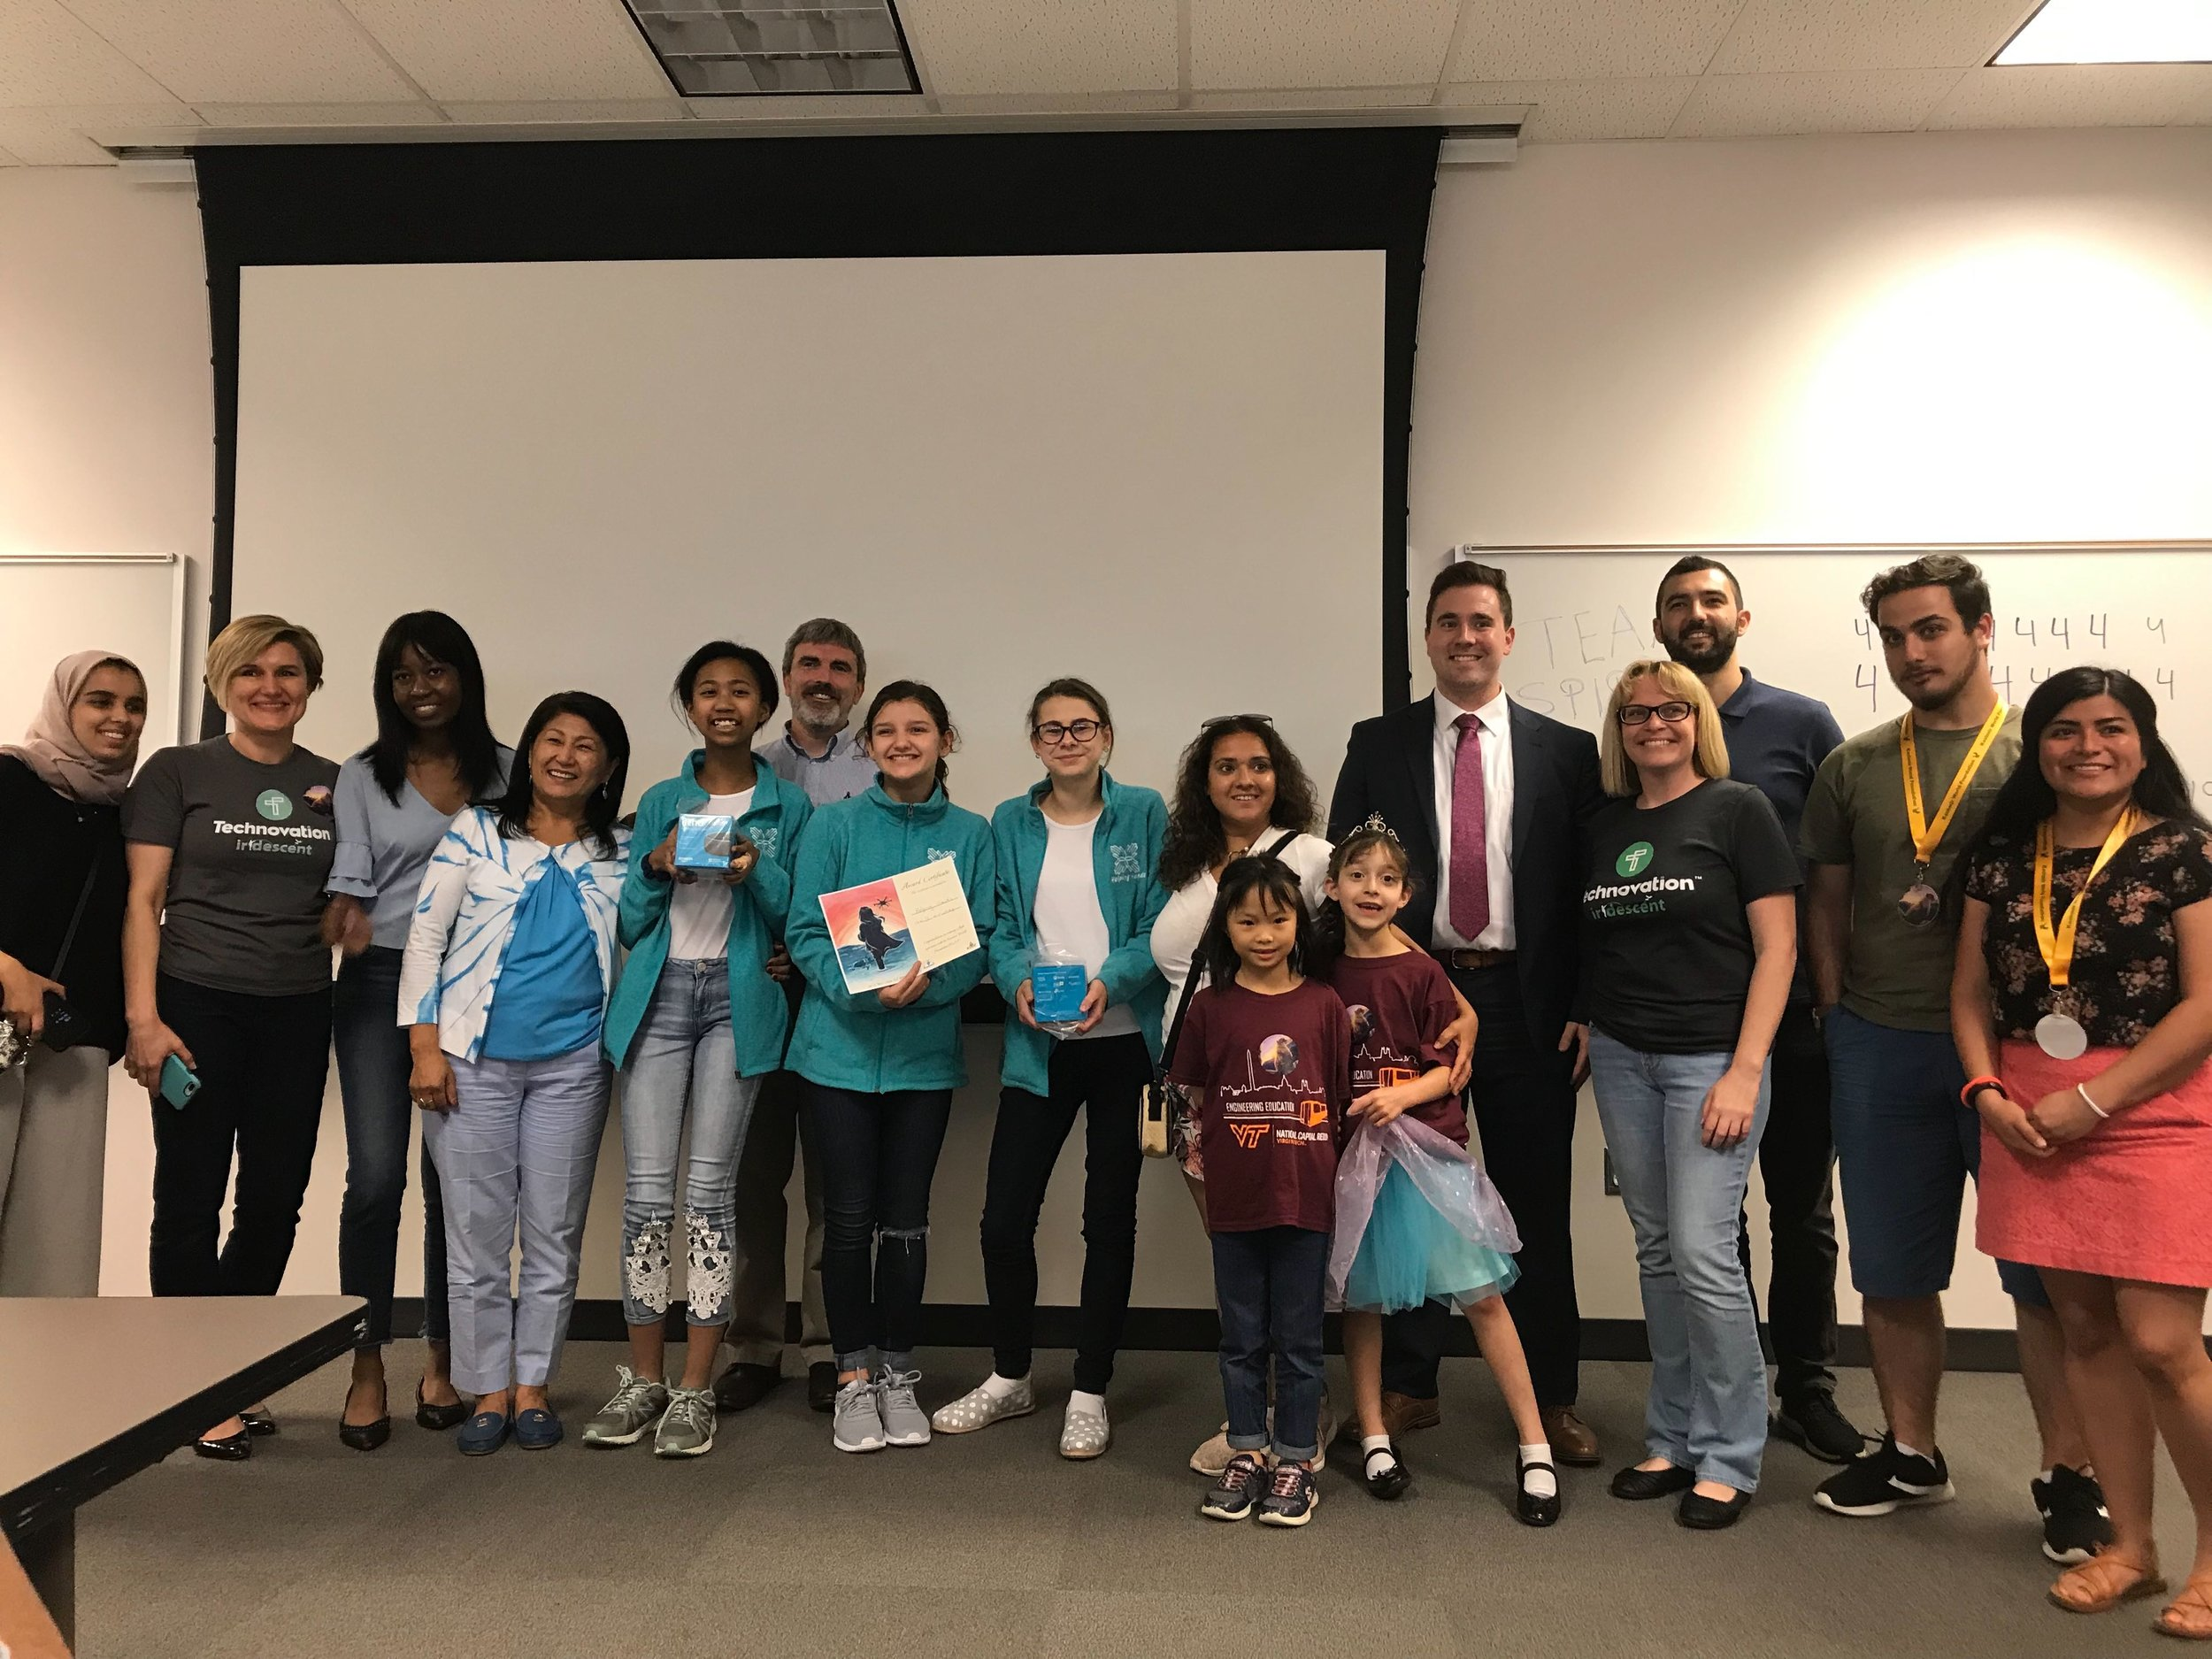 Technovation competitors and Coder Kids leaders.